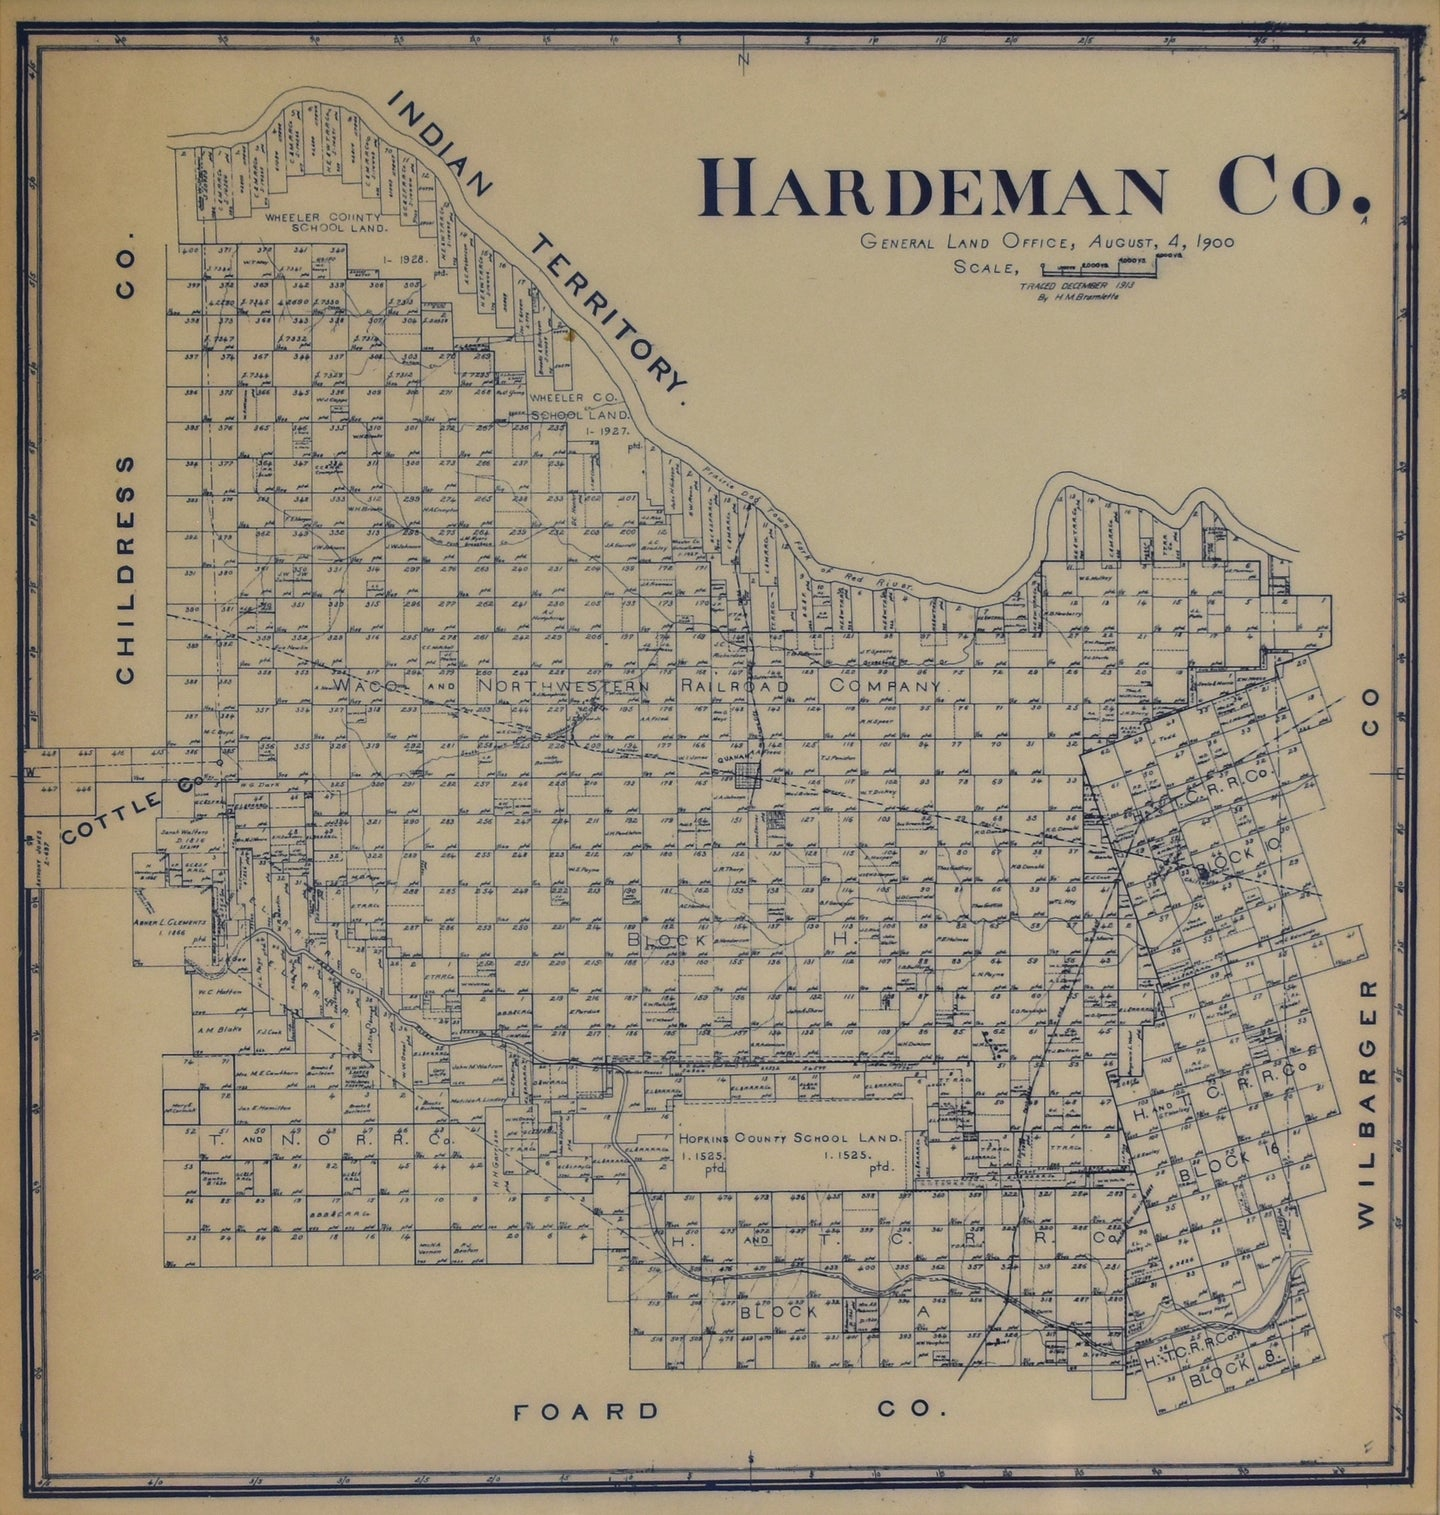 Hardeman County, Texas: General Land Office (H.M. Bramlette) 1913